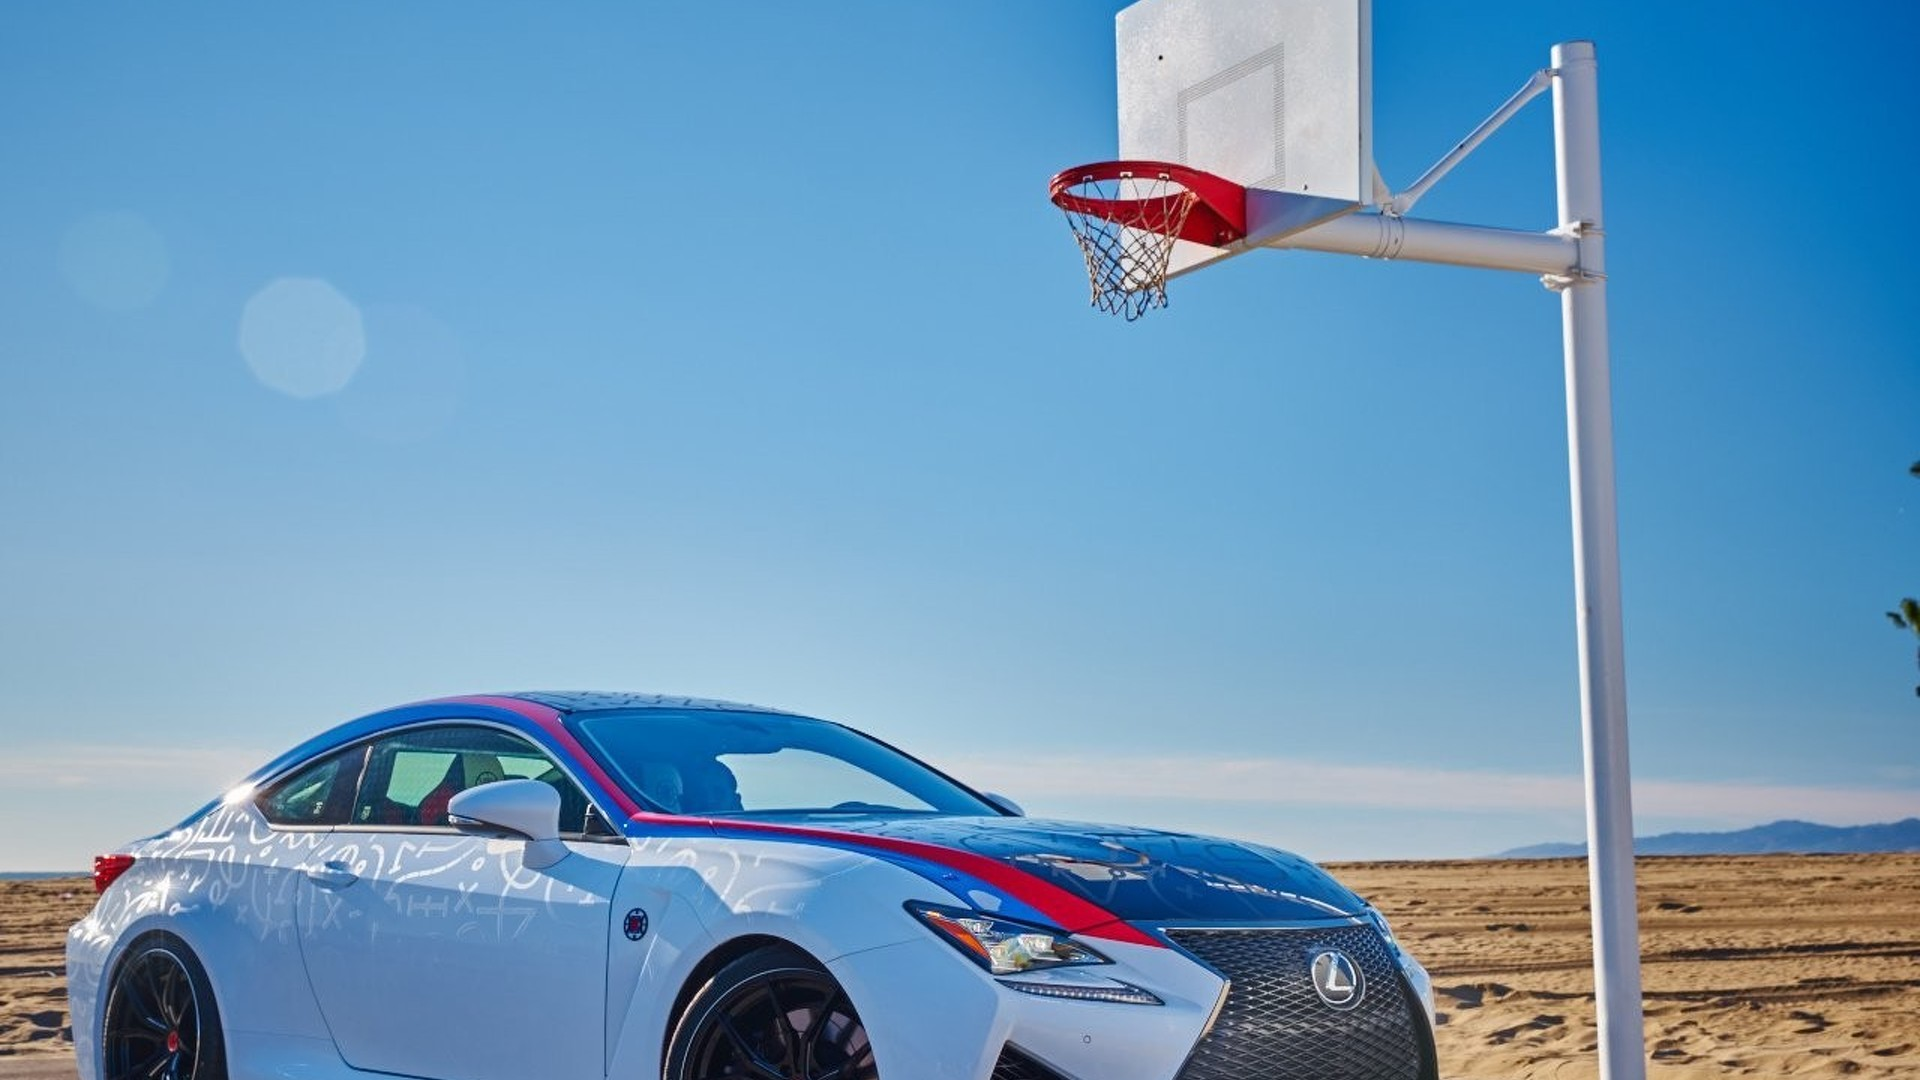 L A Clippers Themed Lexus Rc F To Be Raffled Motor1 Com